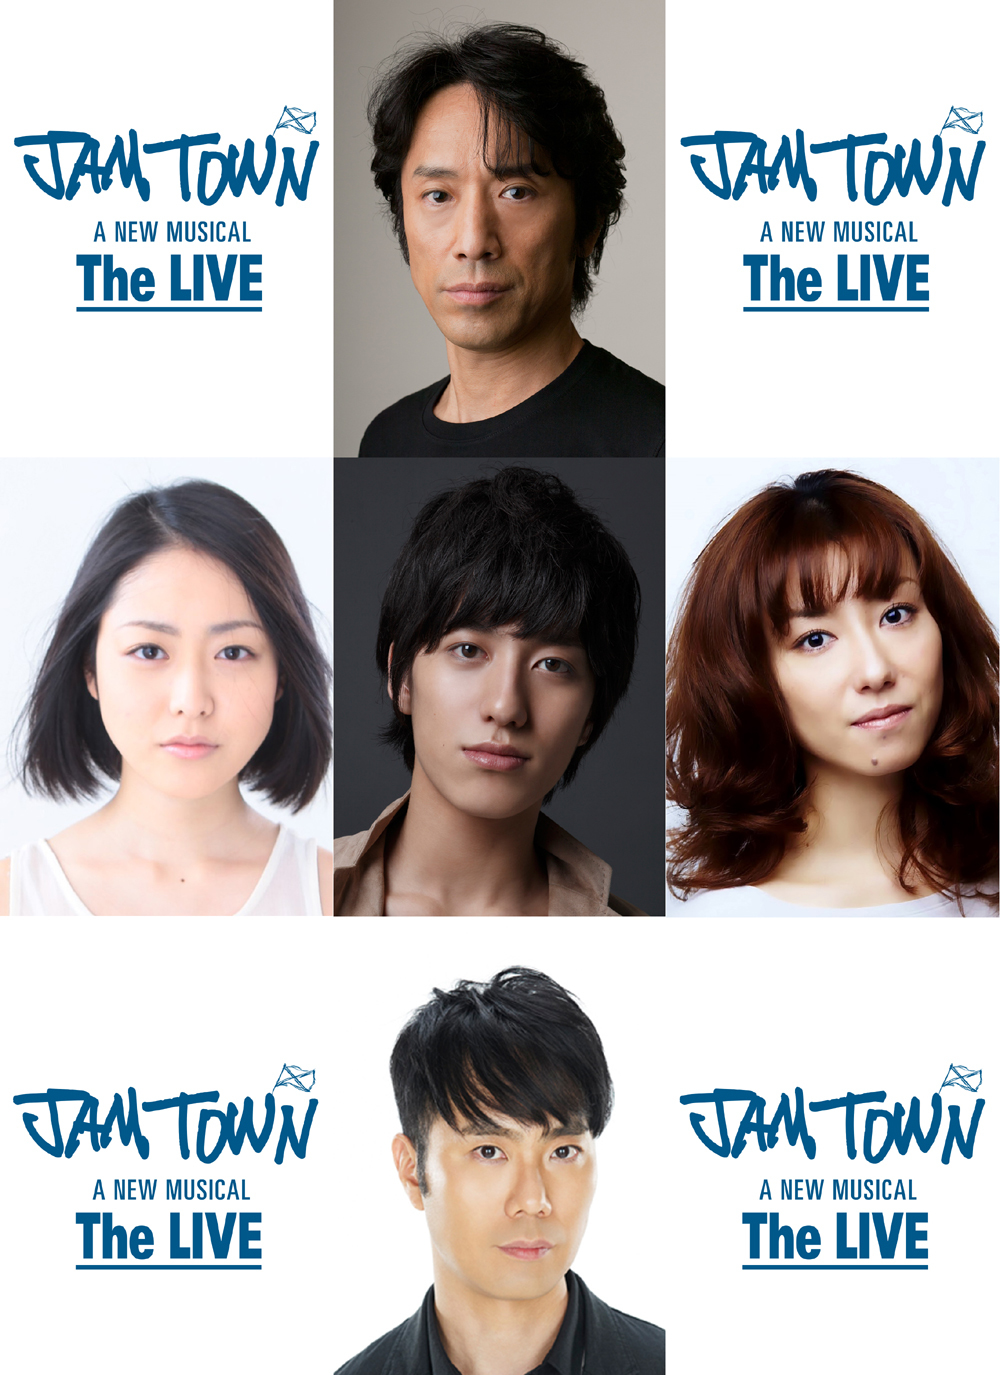 「JAM TOWN the LIVE」